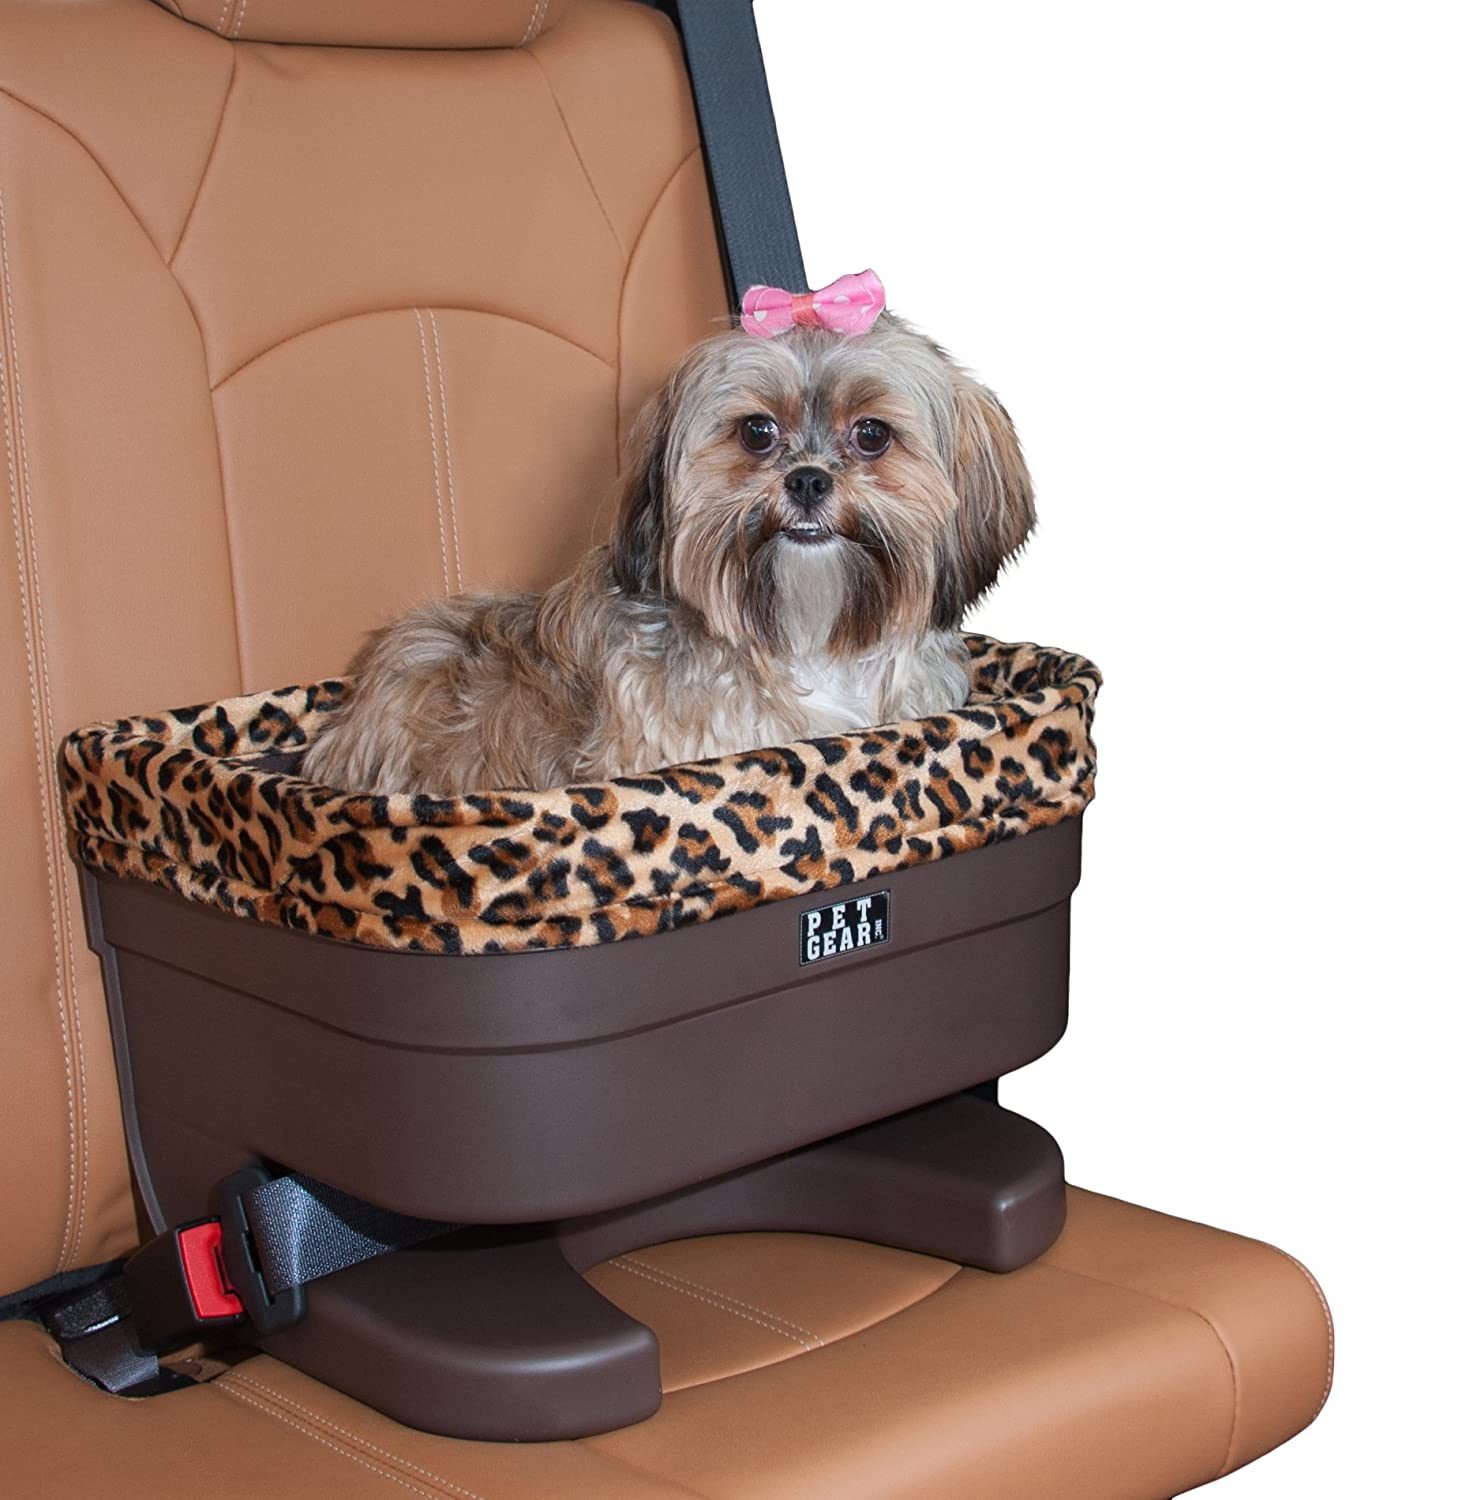 Chocolate jaguar 16\ Chocolate jaguar 16\ Pet Gear Bucket Booster Car Seat for Dogs Cats, Removable Washable Comfort Pillow + Liner, Safety Tethers Included, Installs in Seconds, No Tools Required, 2 Sizes